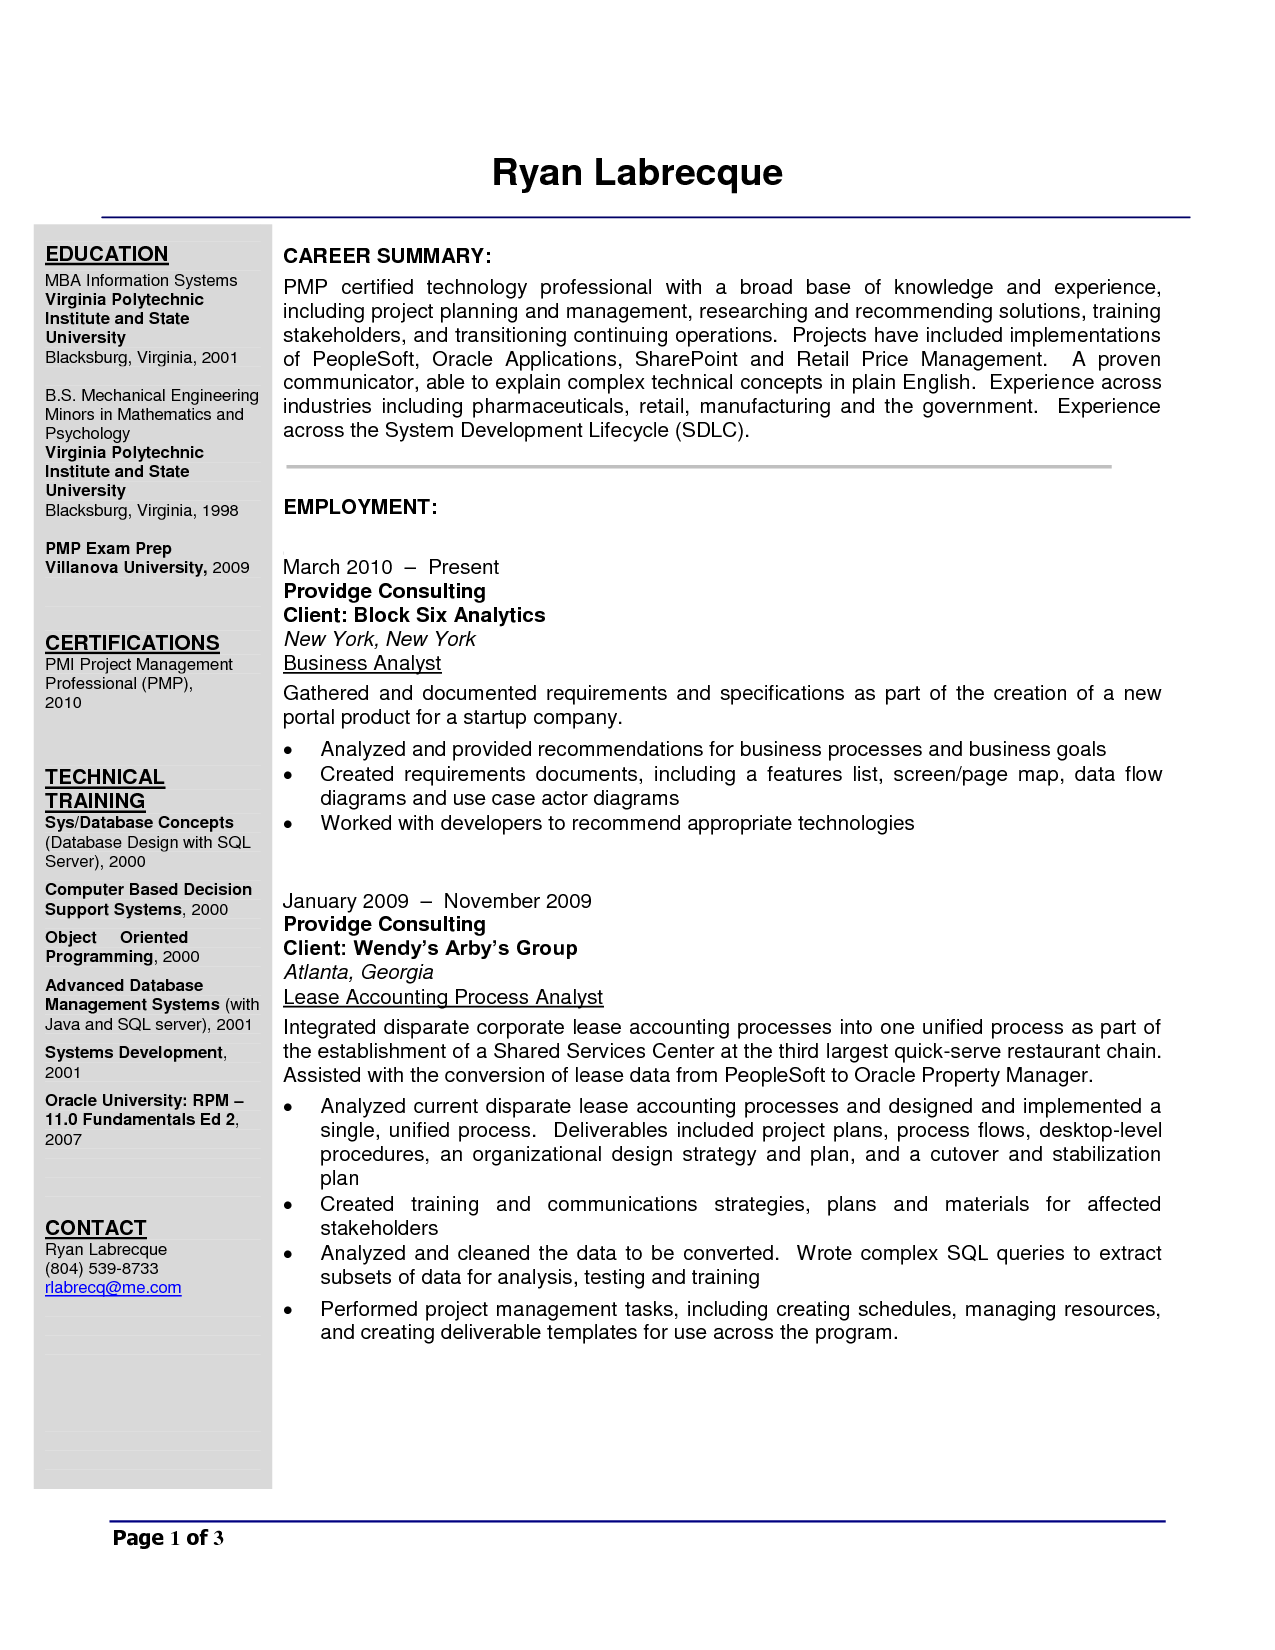 business analyst resume business analyst resume templates business analyst resume sample doc by ryan labrecque - Sample Management Business Analyst Resume